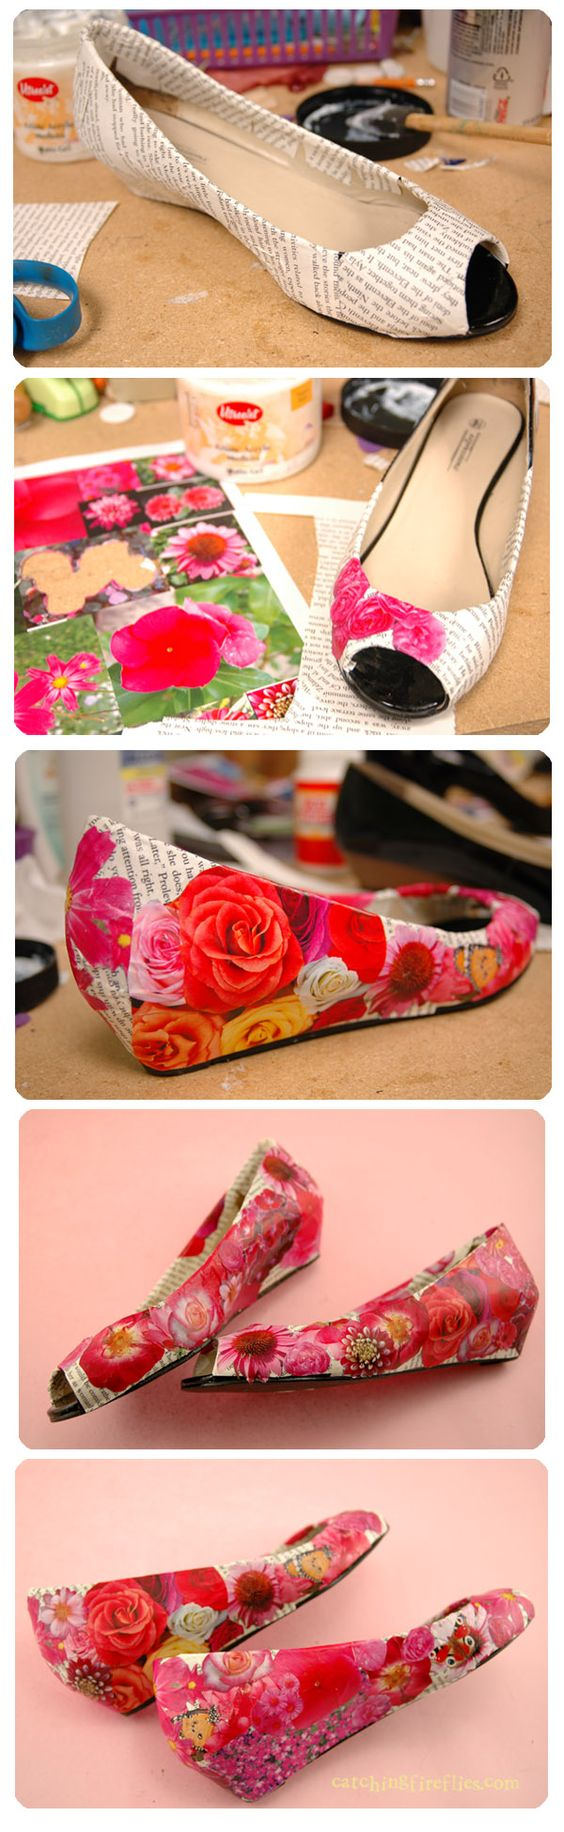 DIY tutorial on how to create fancy floral decoupage shoes: